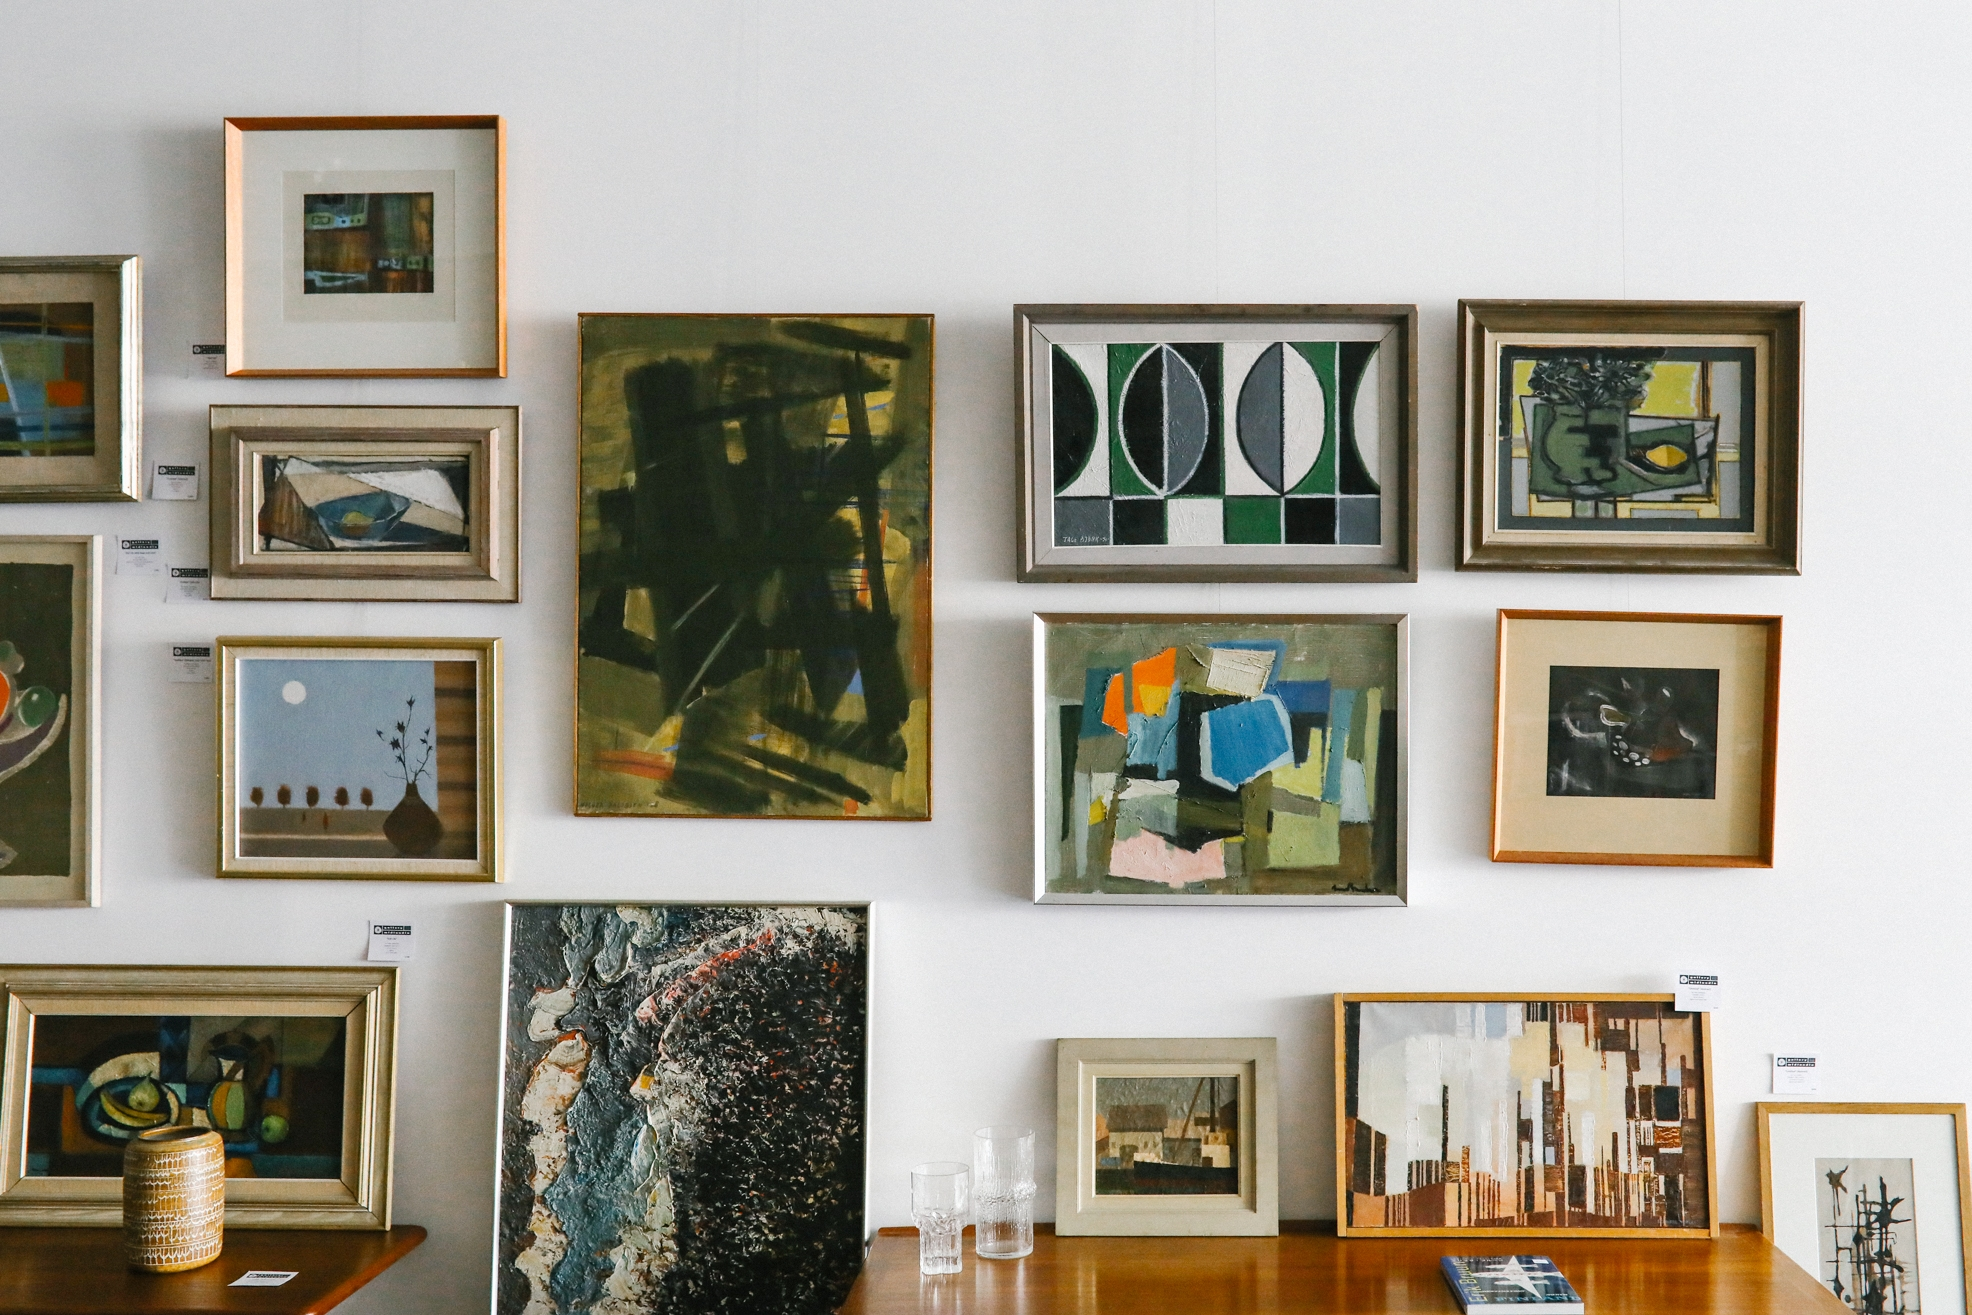 original paintings and prints from 1930 - 1970